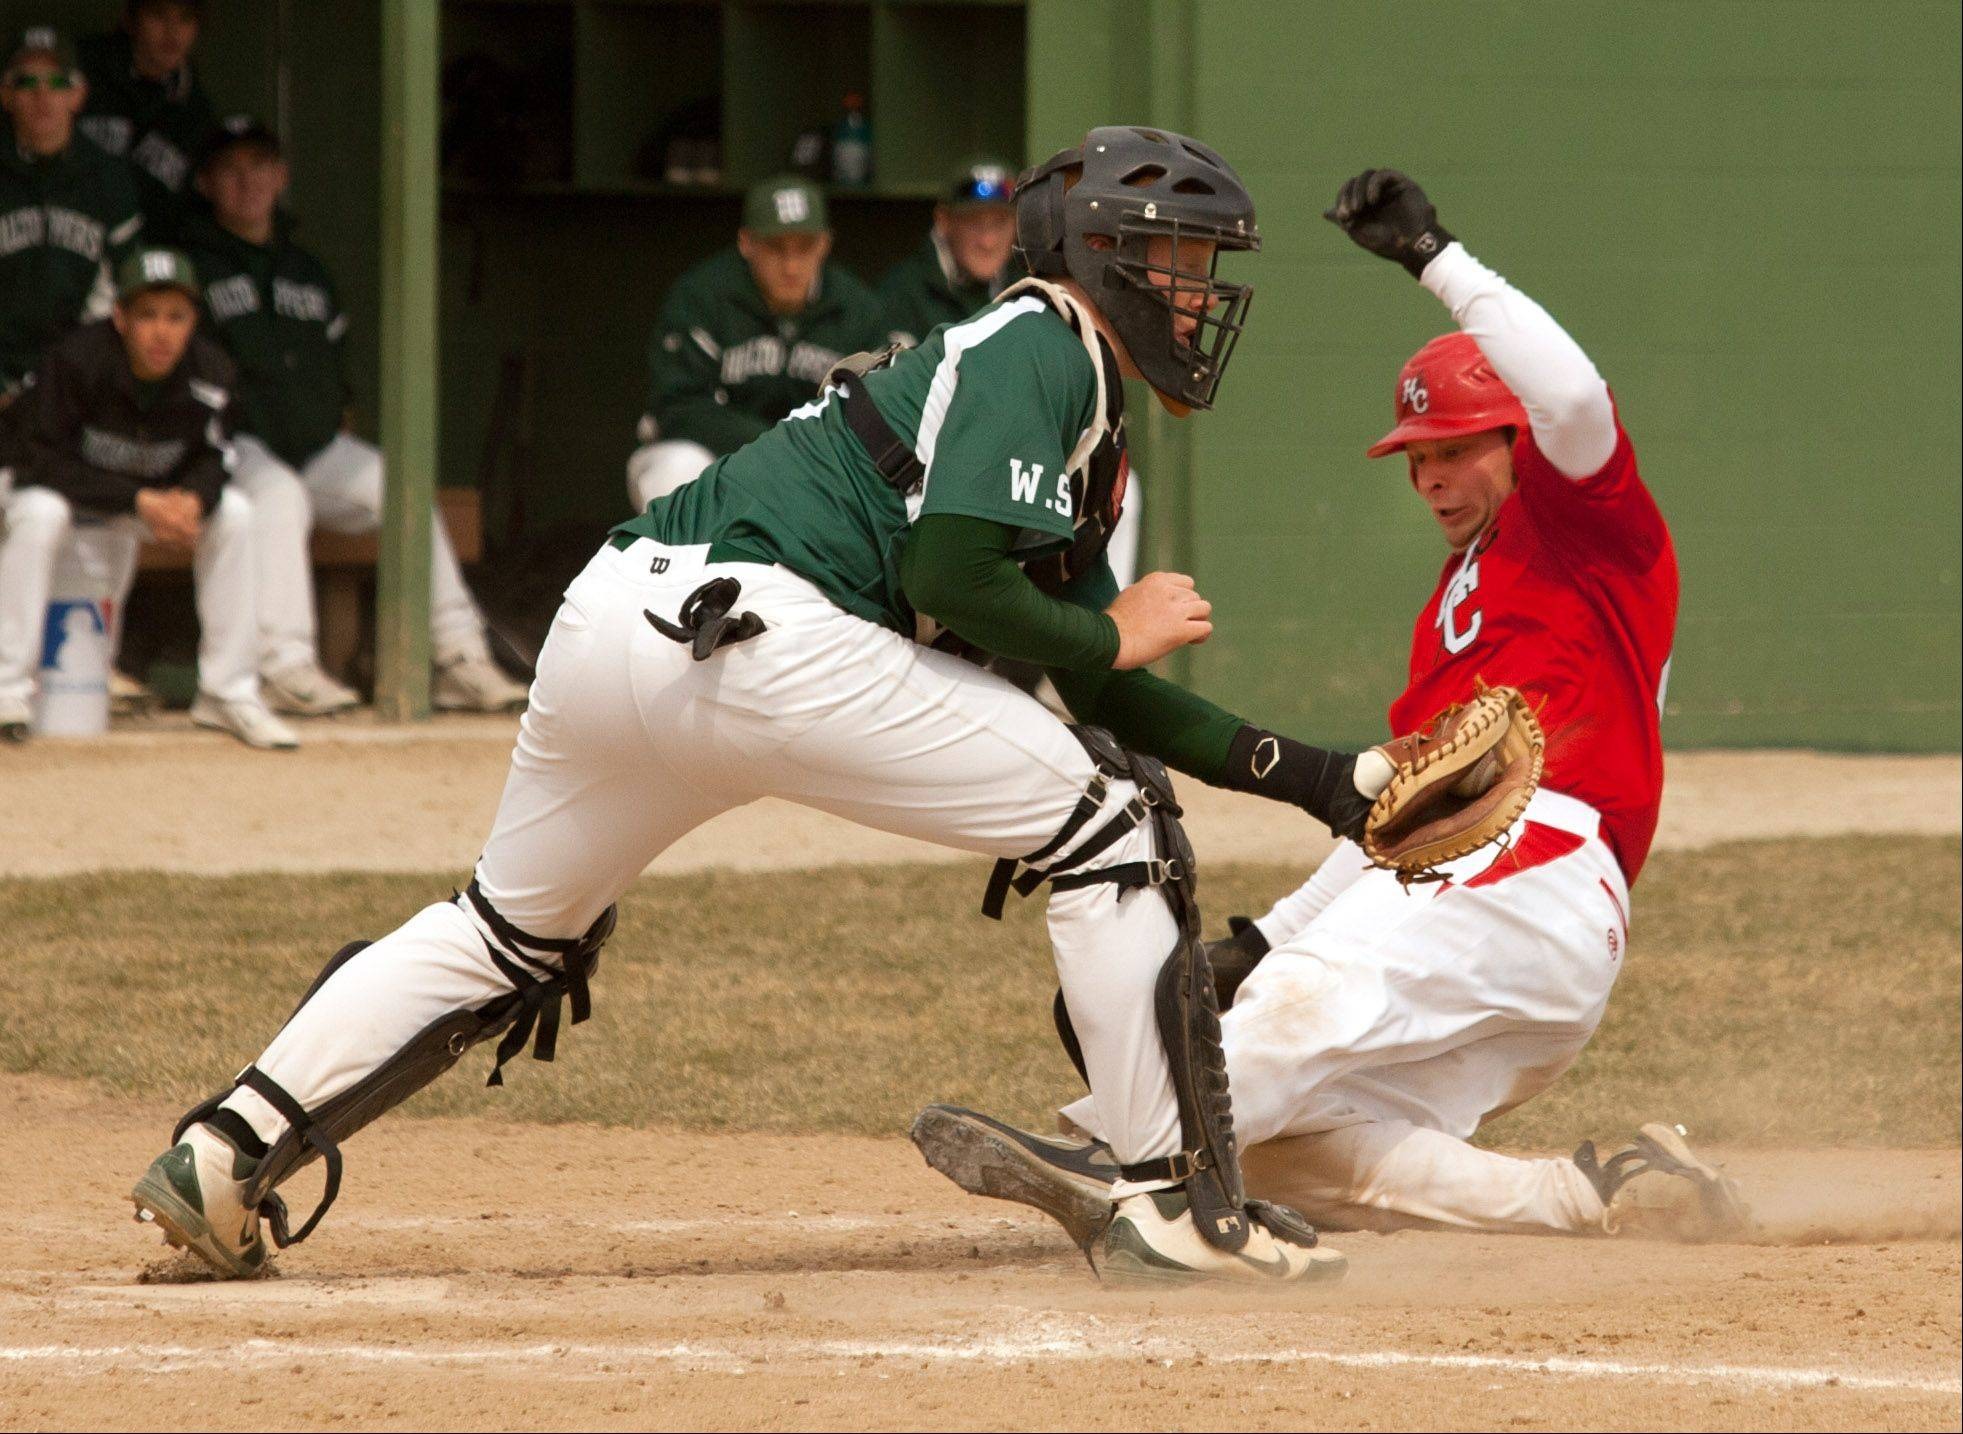 Glenbard West catcher Will Simoneit tags out Hinsdale Central's Jacob White during a 6-5 win .